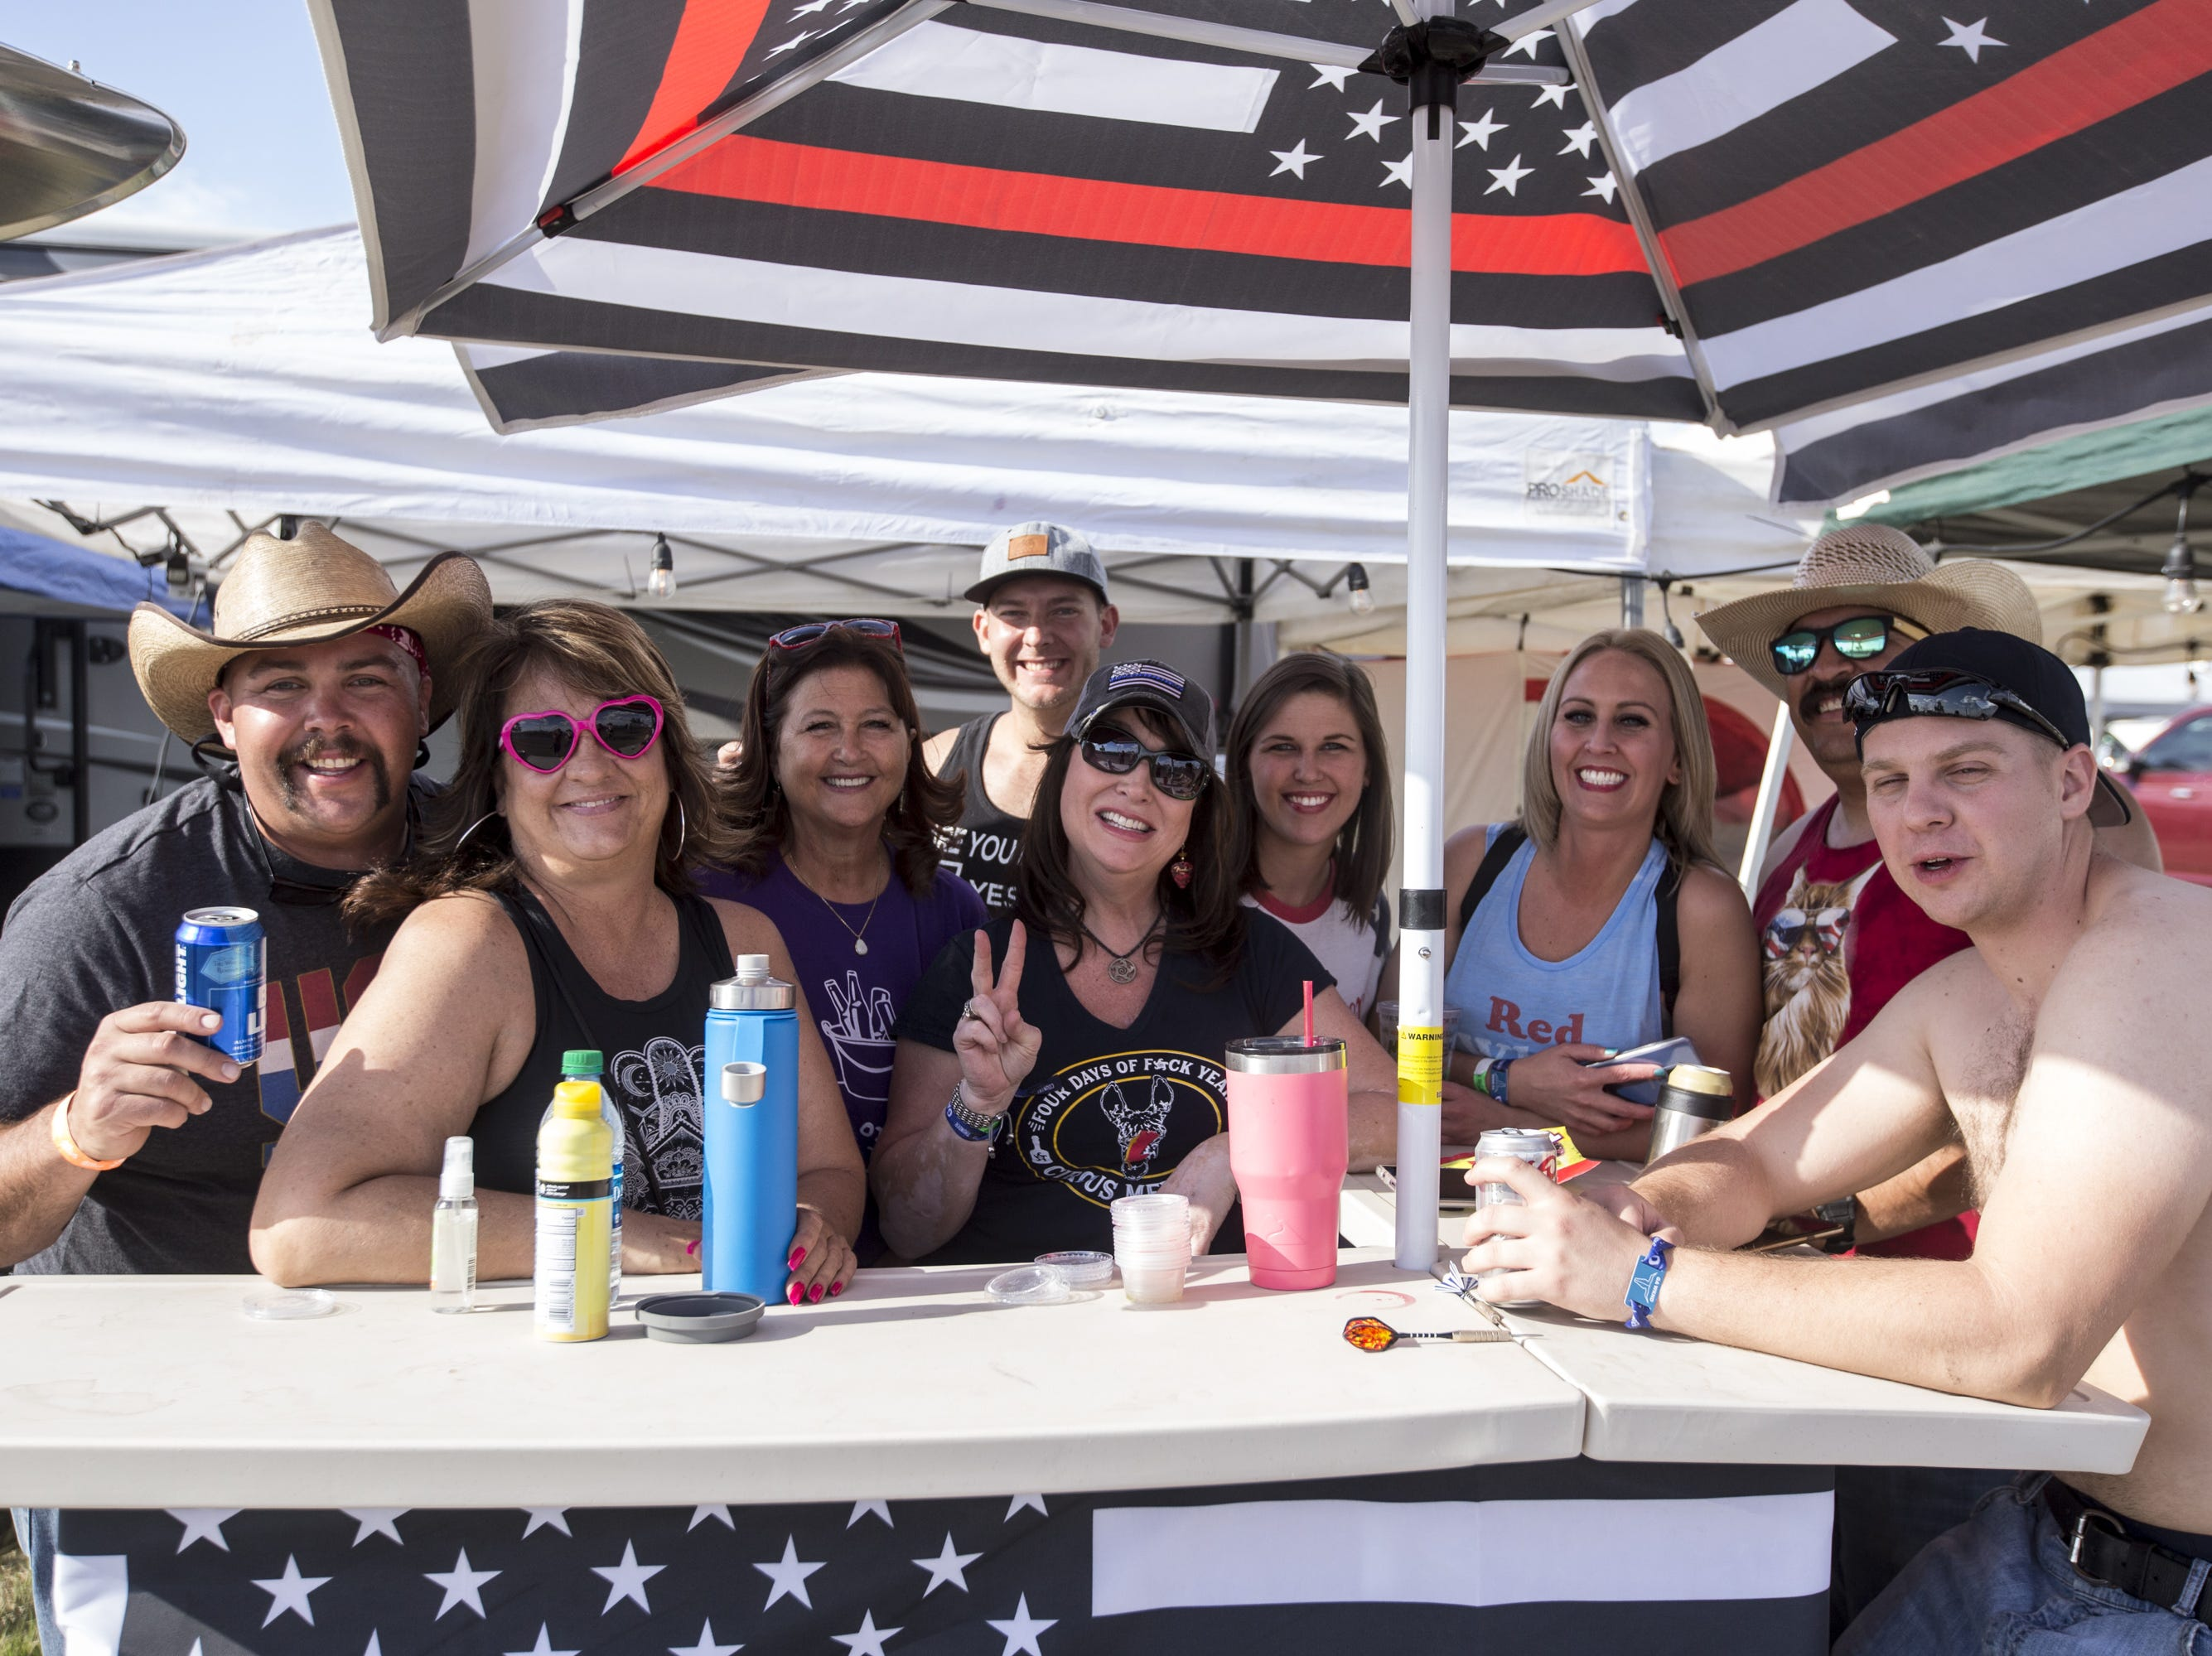 Festival-goers pose for a portrait on Friday, April 12, 2019, during Day 2 of Country Thunder Arizona in Florence, Ariz.